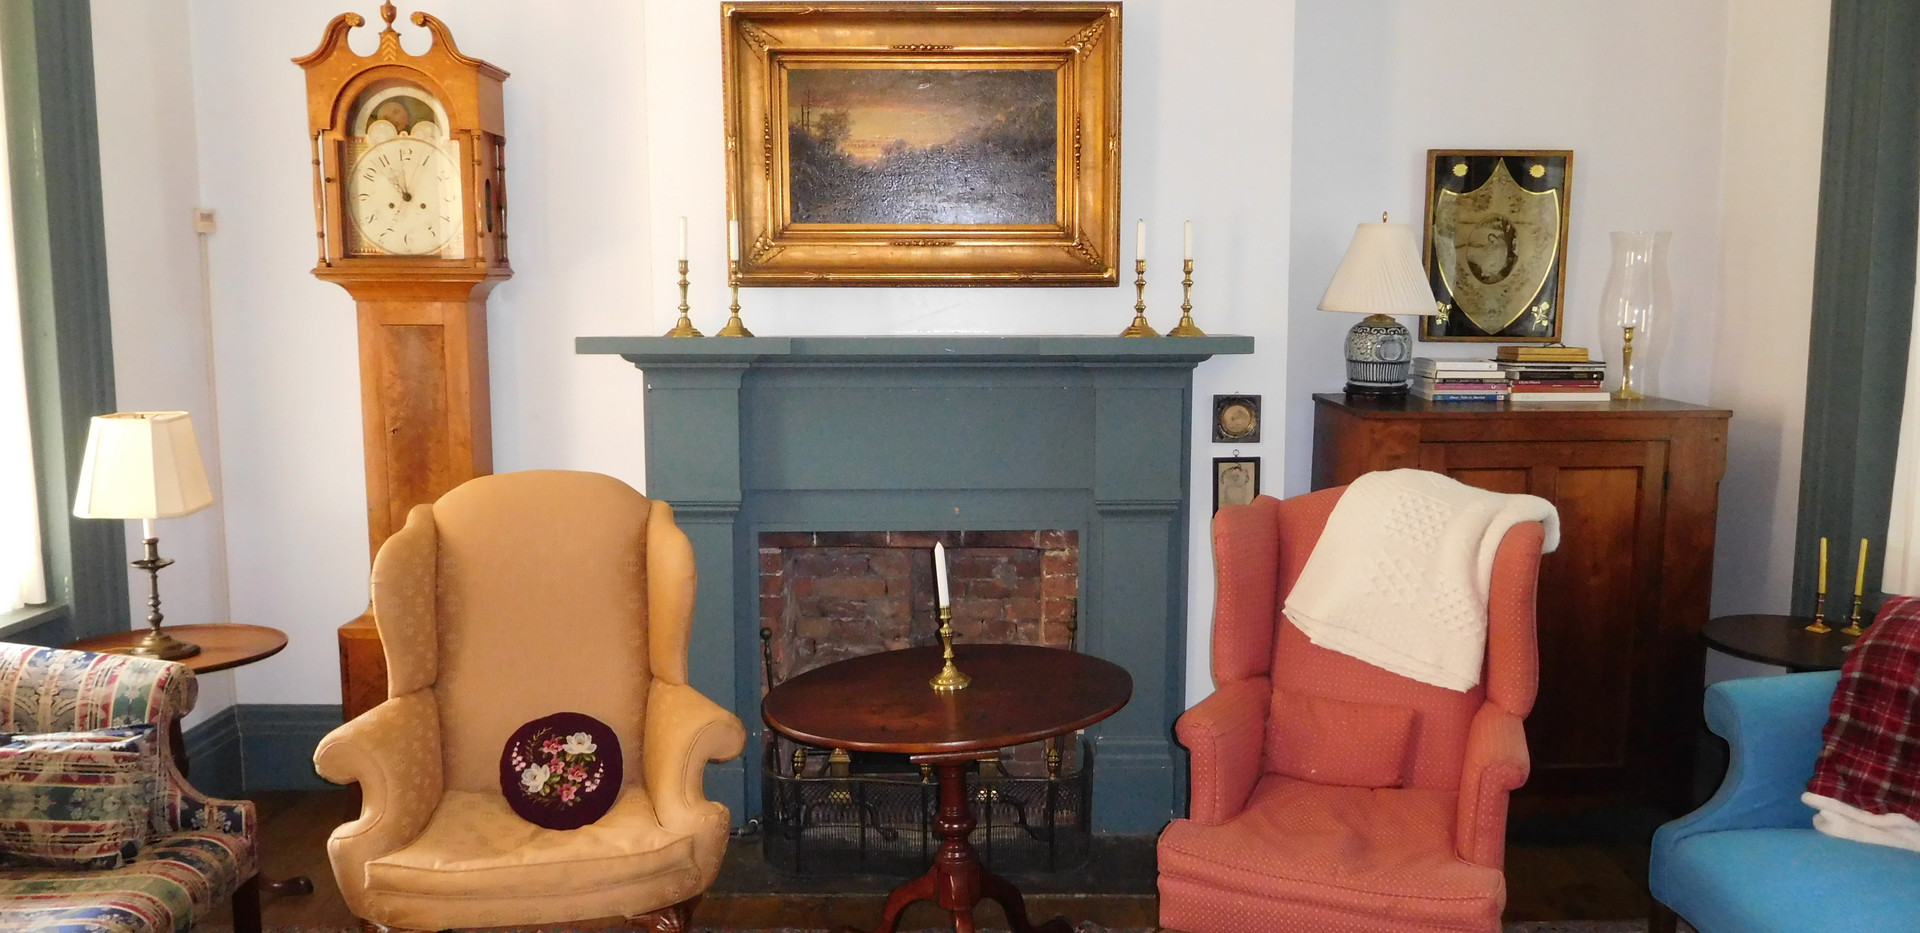 View of the Chillingworth living room